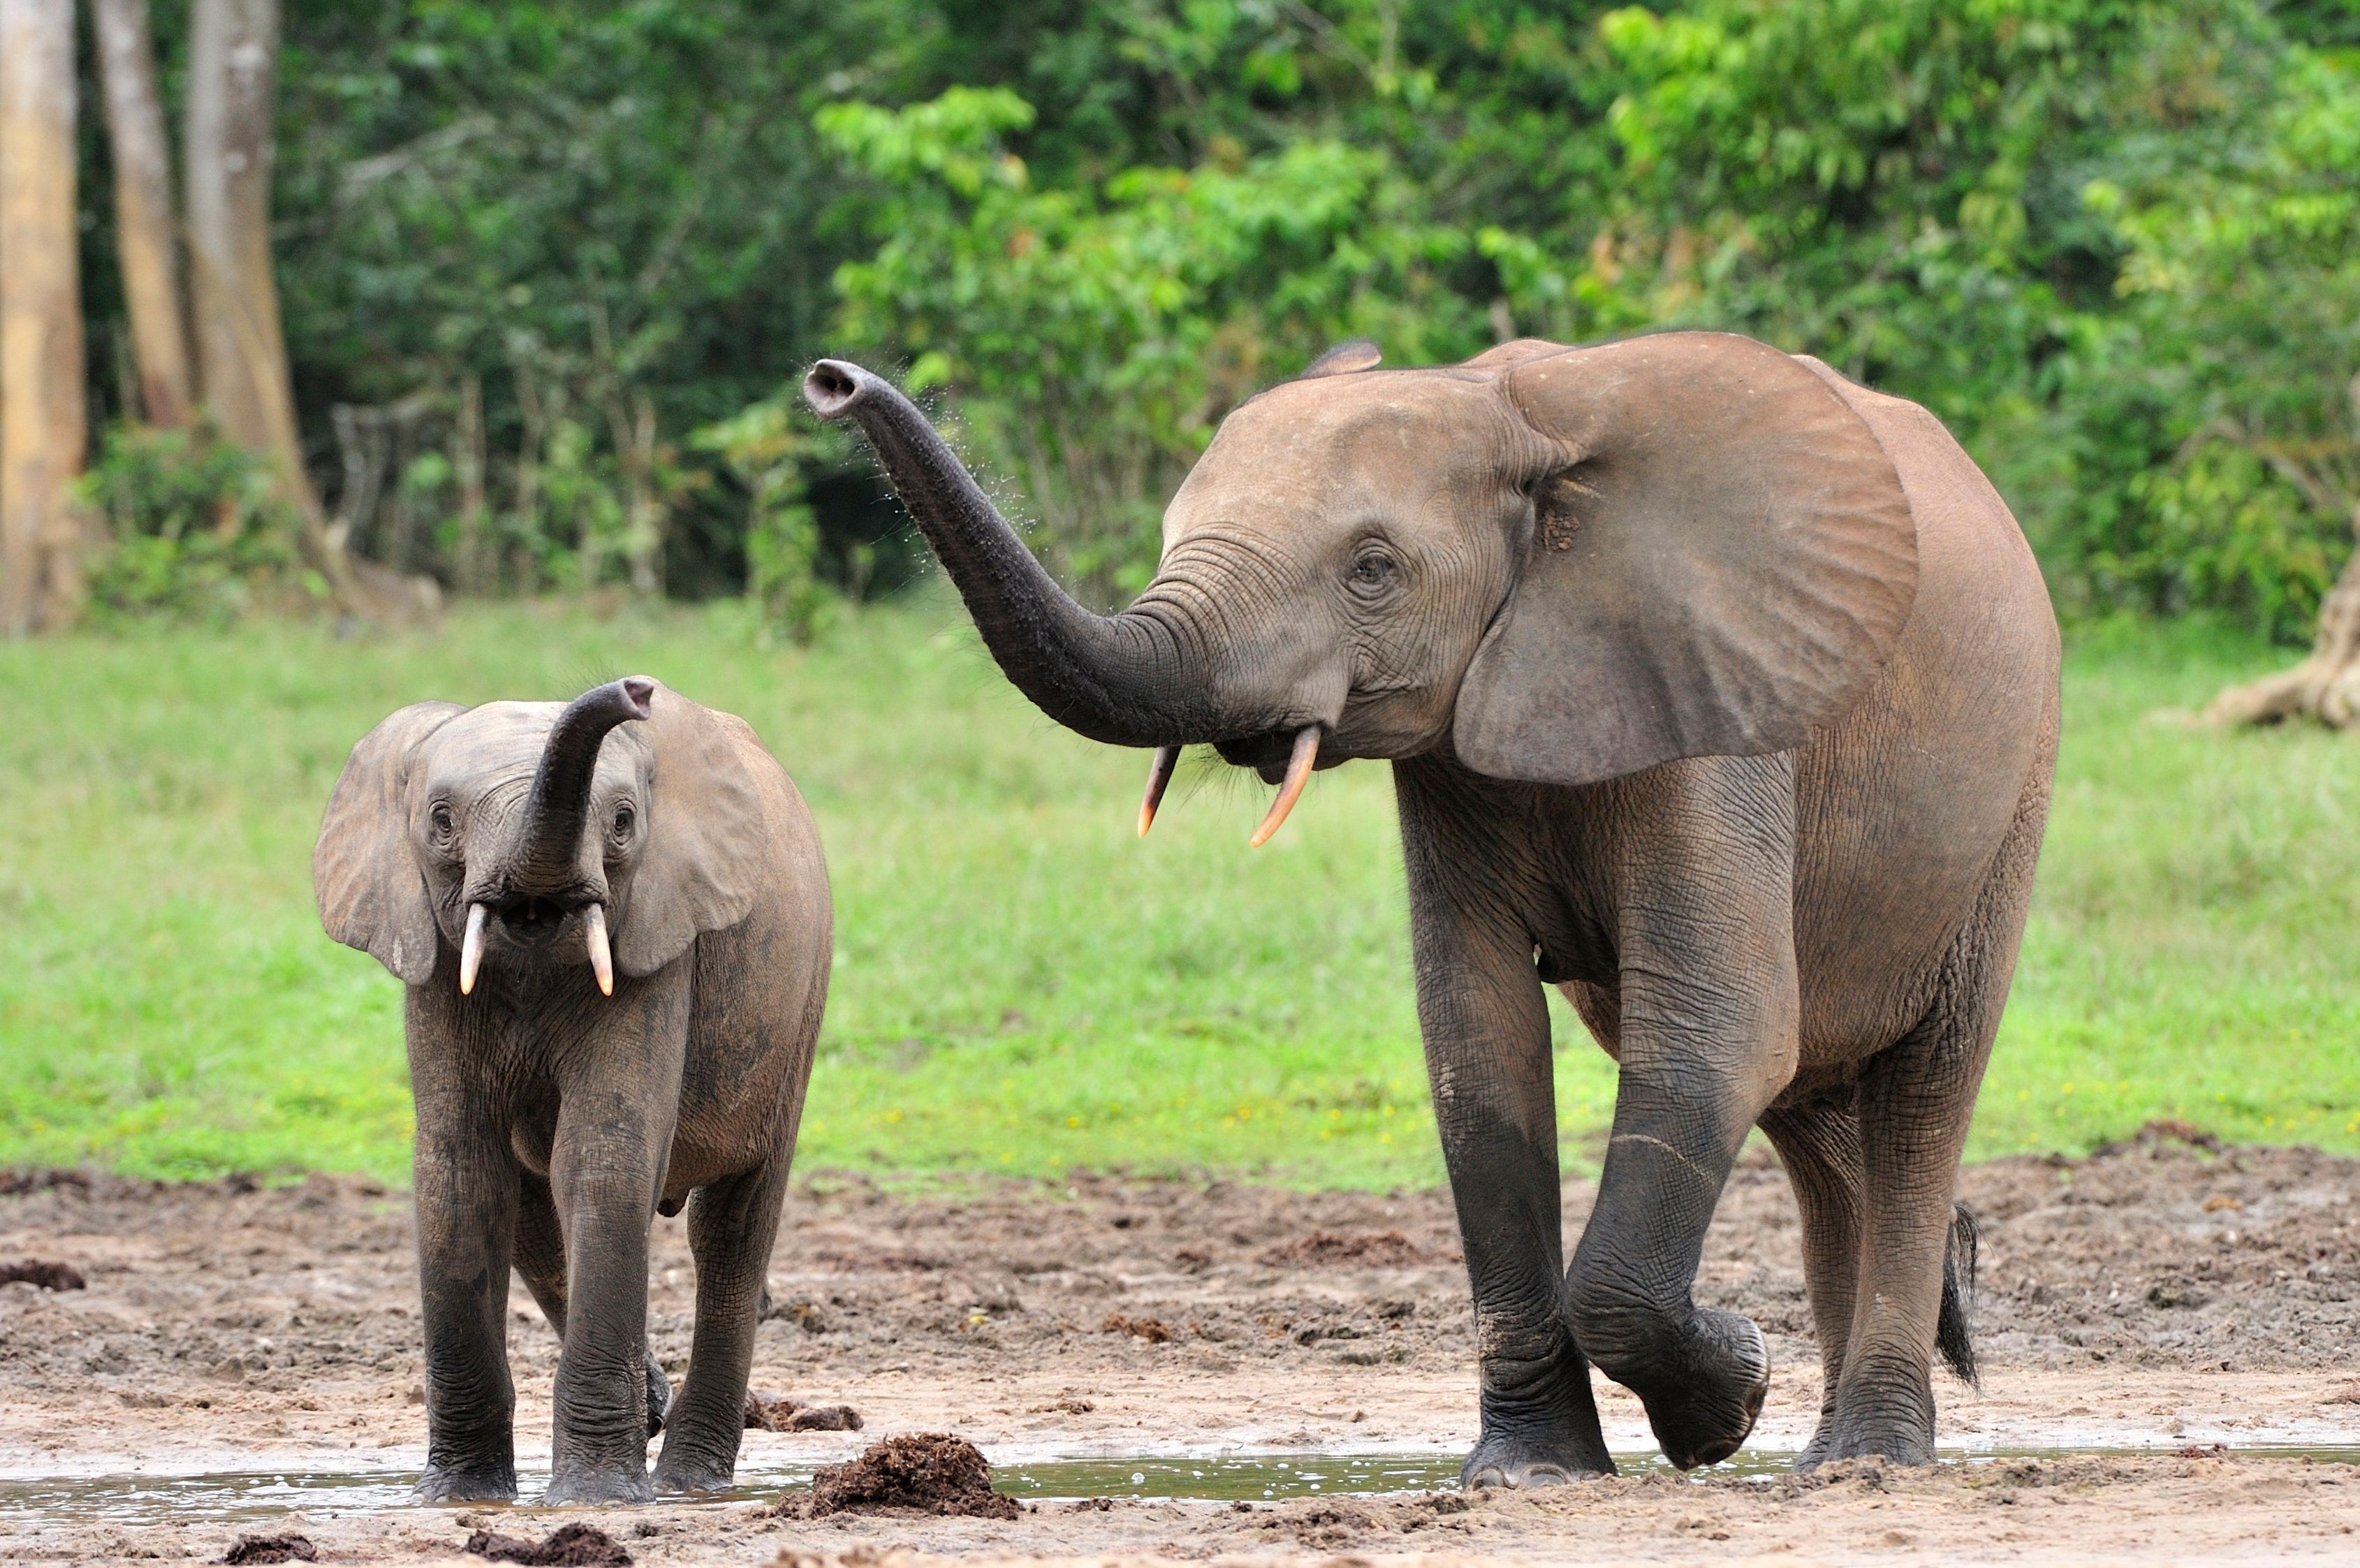 A forest elephant calf and cow at a Dzanga forest clearing in the Central African Republic.